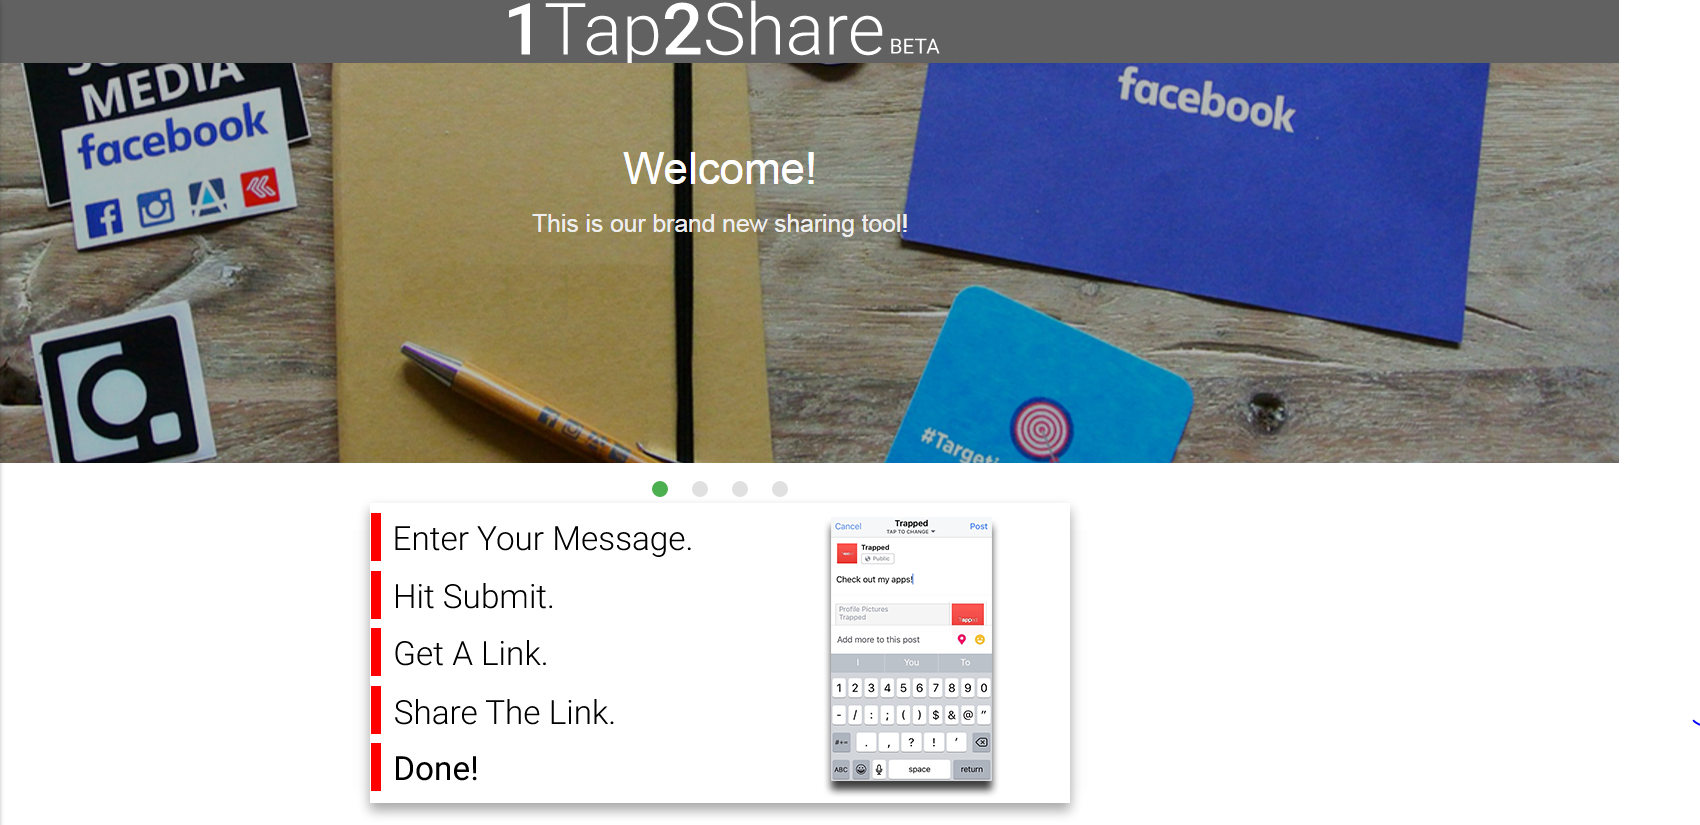 Users can share on Facebook, SMS, Email, Twitter and Google